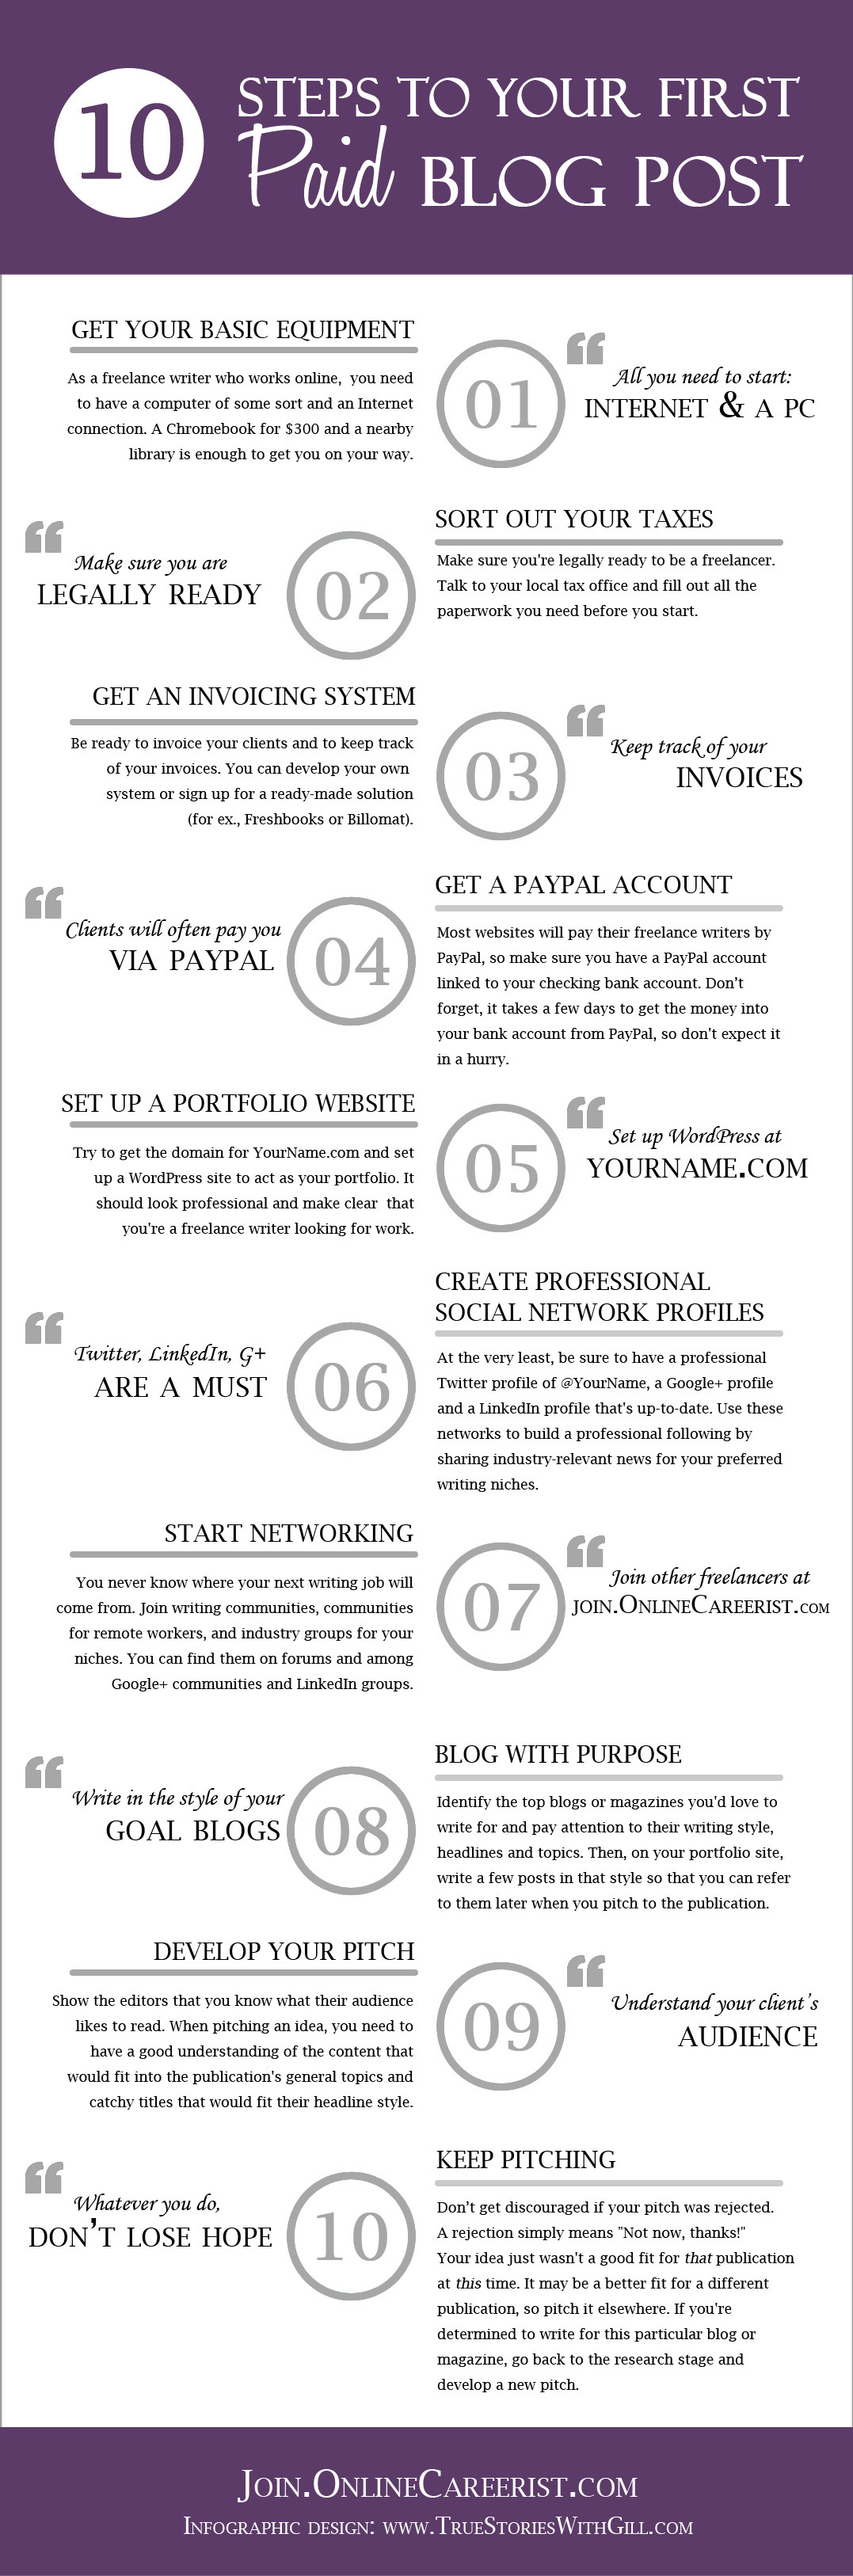 10 Steps to Your First Paid Blog Post [Infographic]